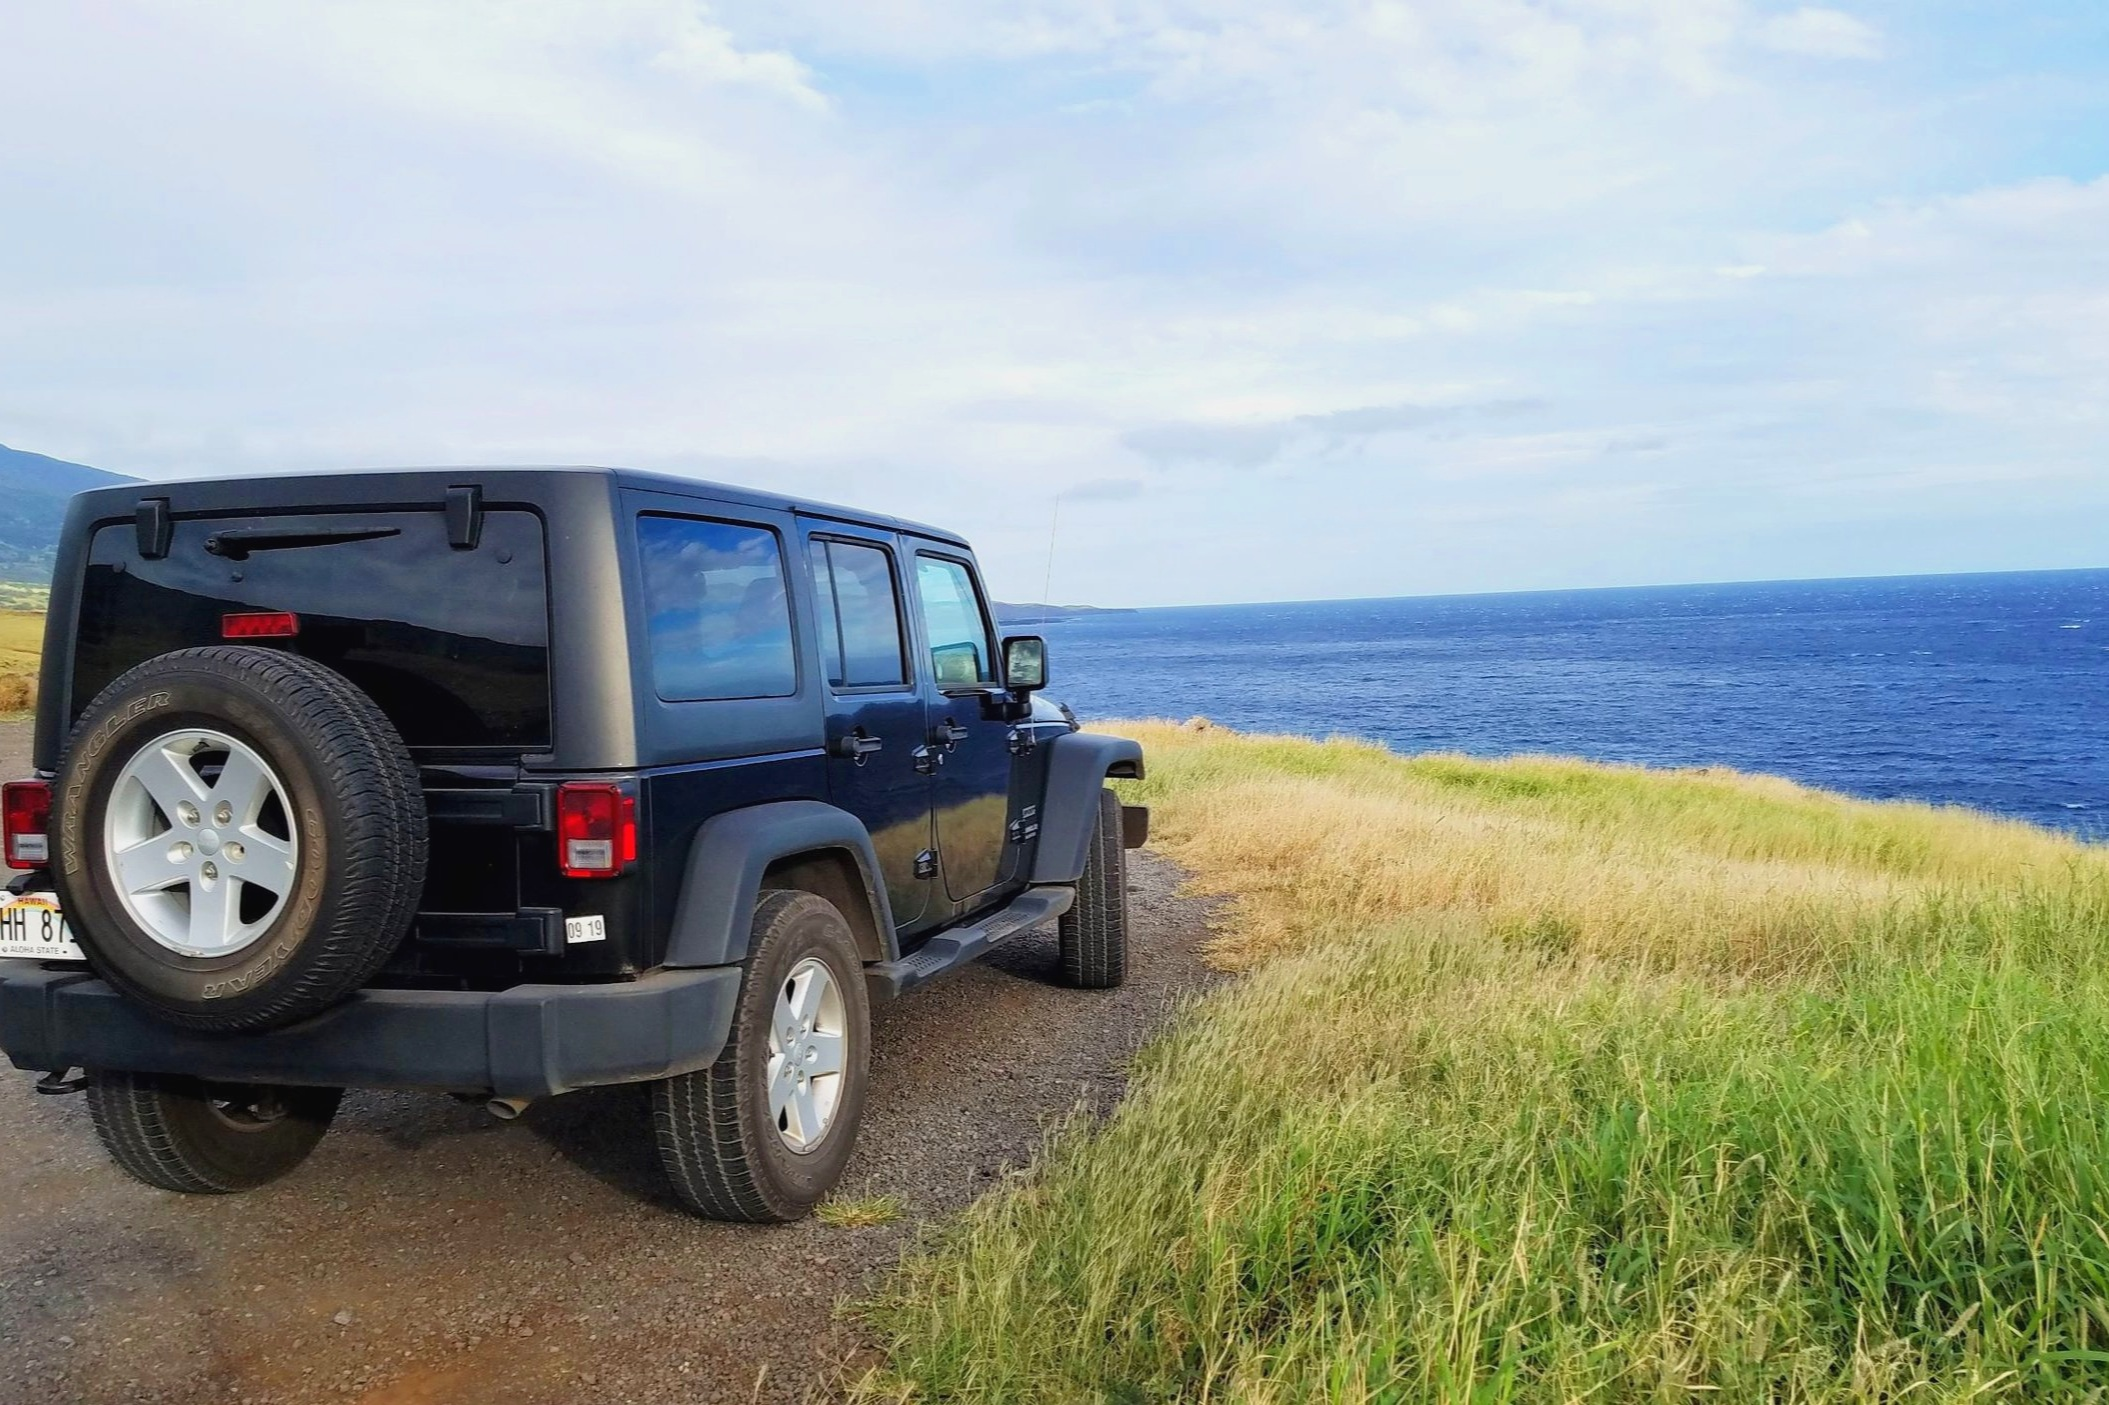 A black jeep overlooks the blue ocean on the Road to Hana.